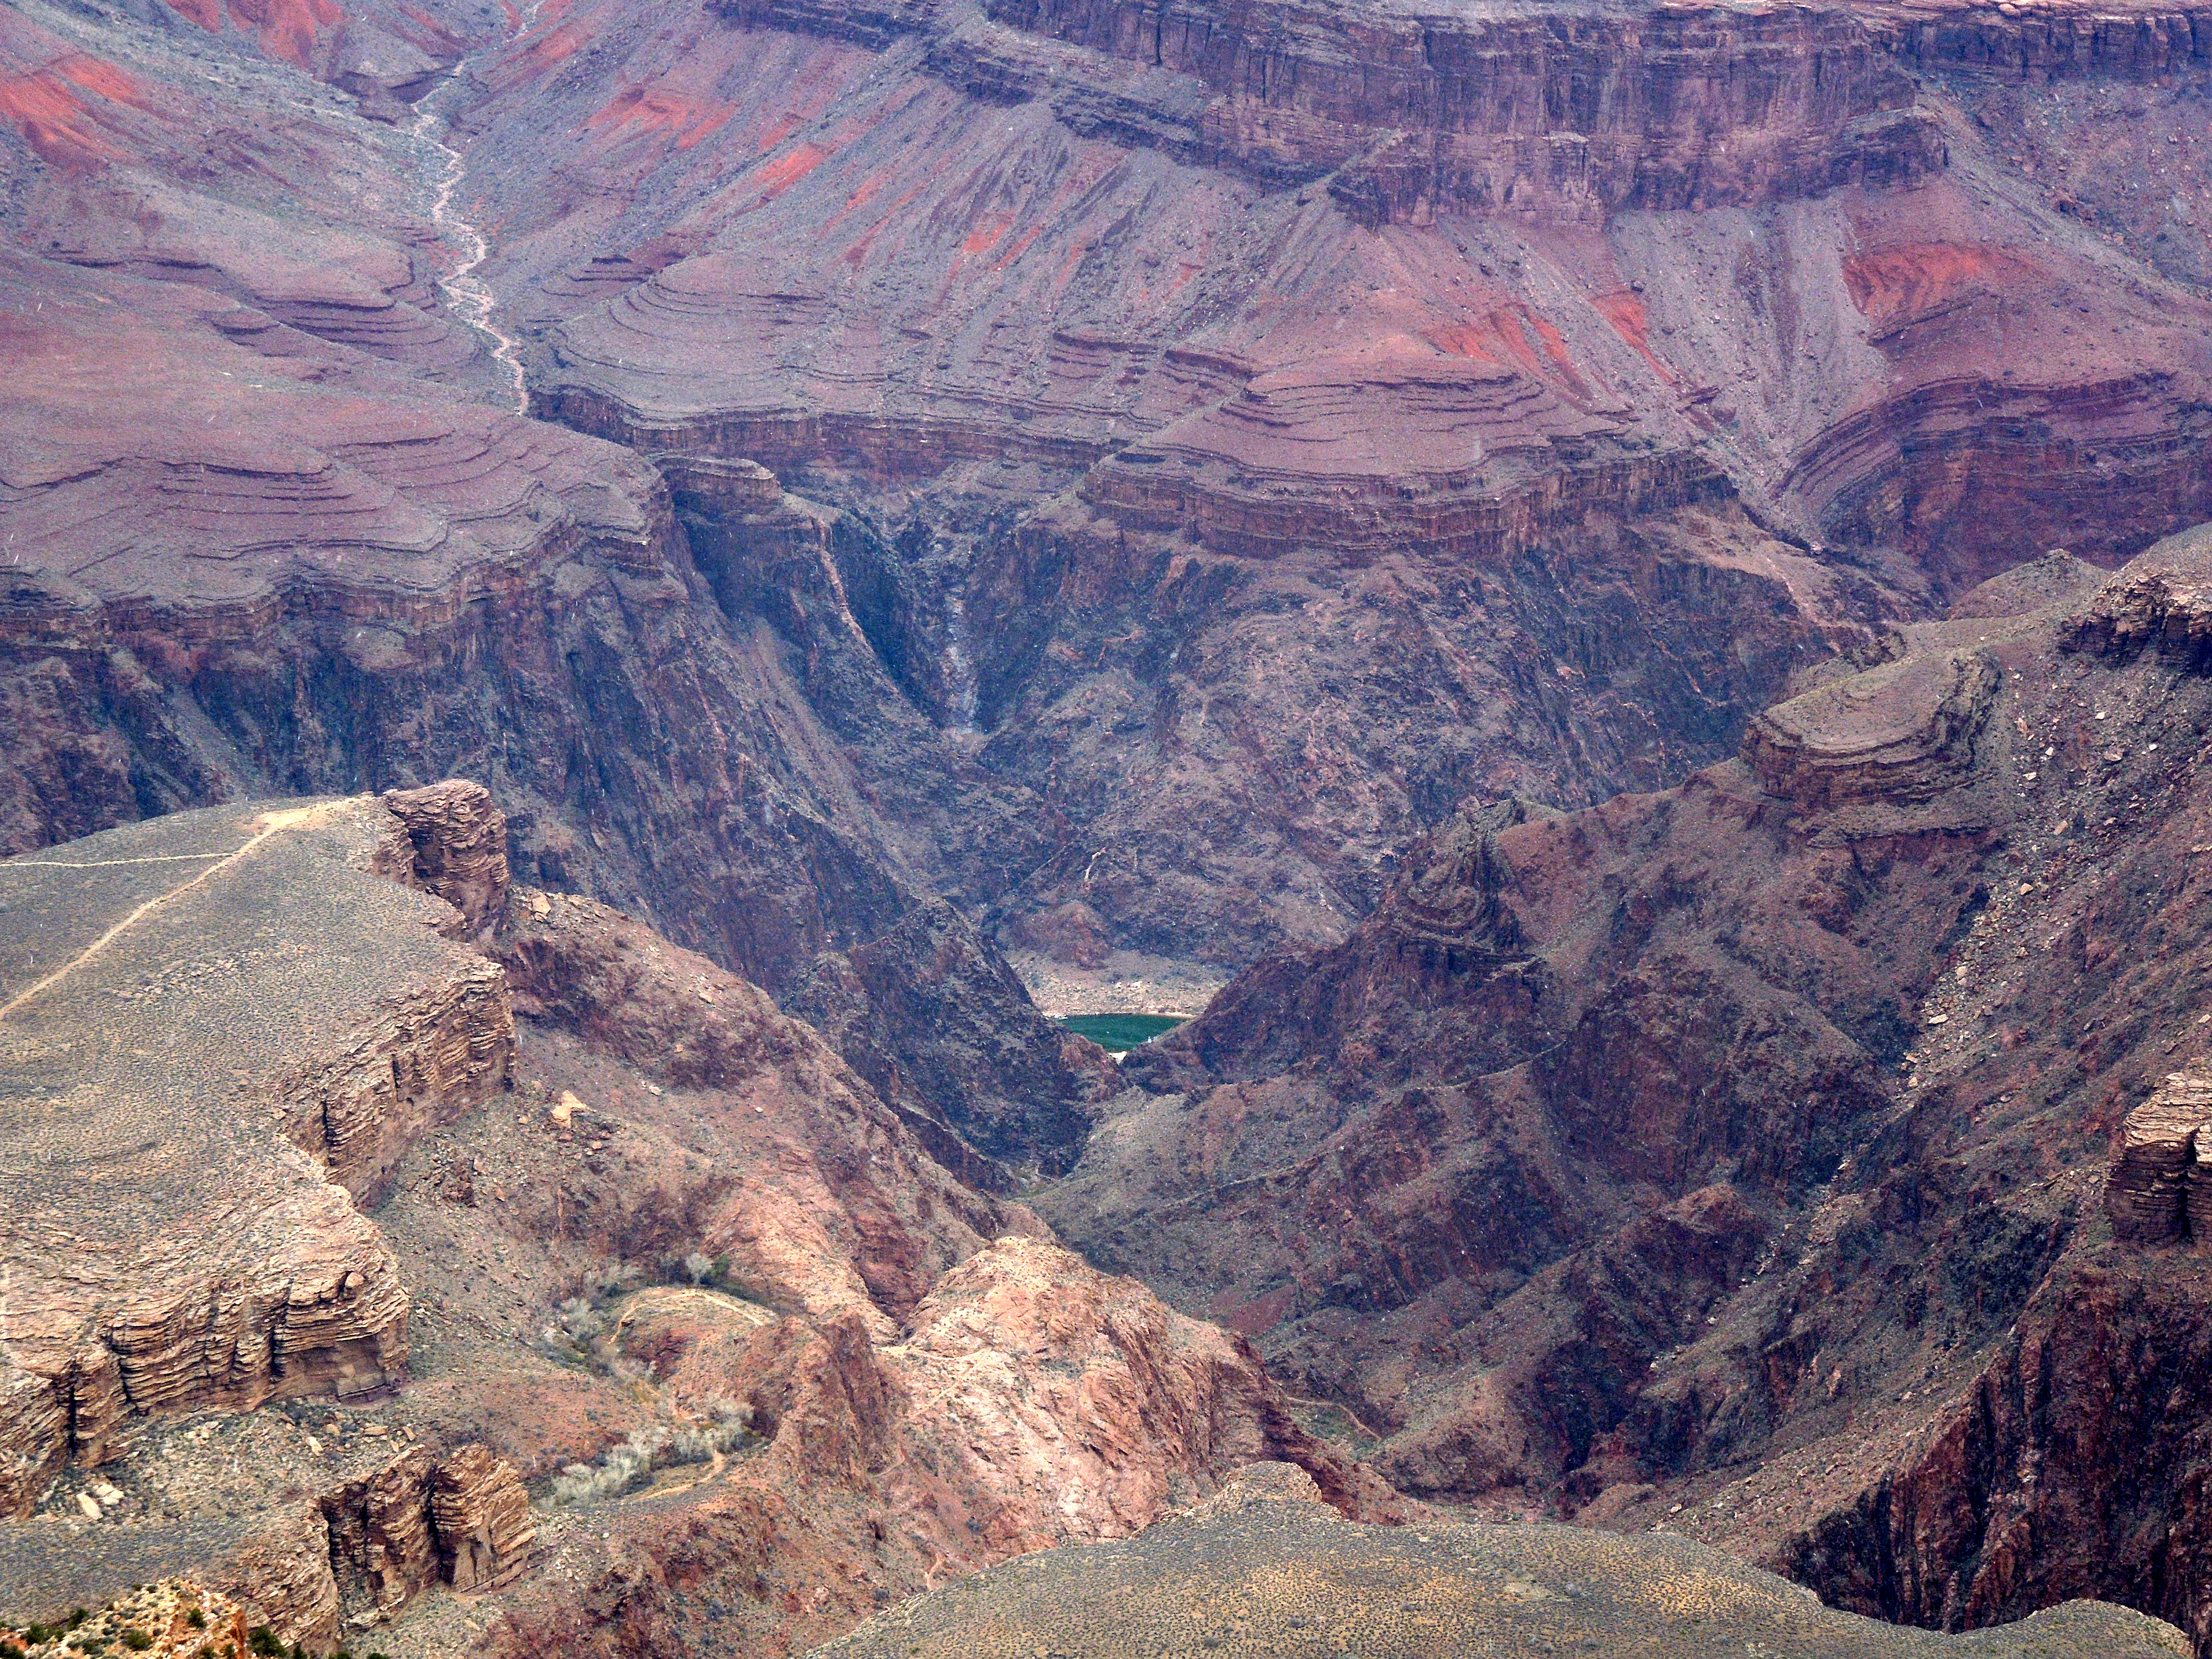 dating the rock layers in the grand canyon